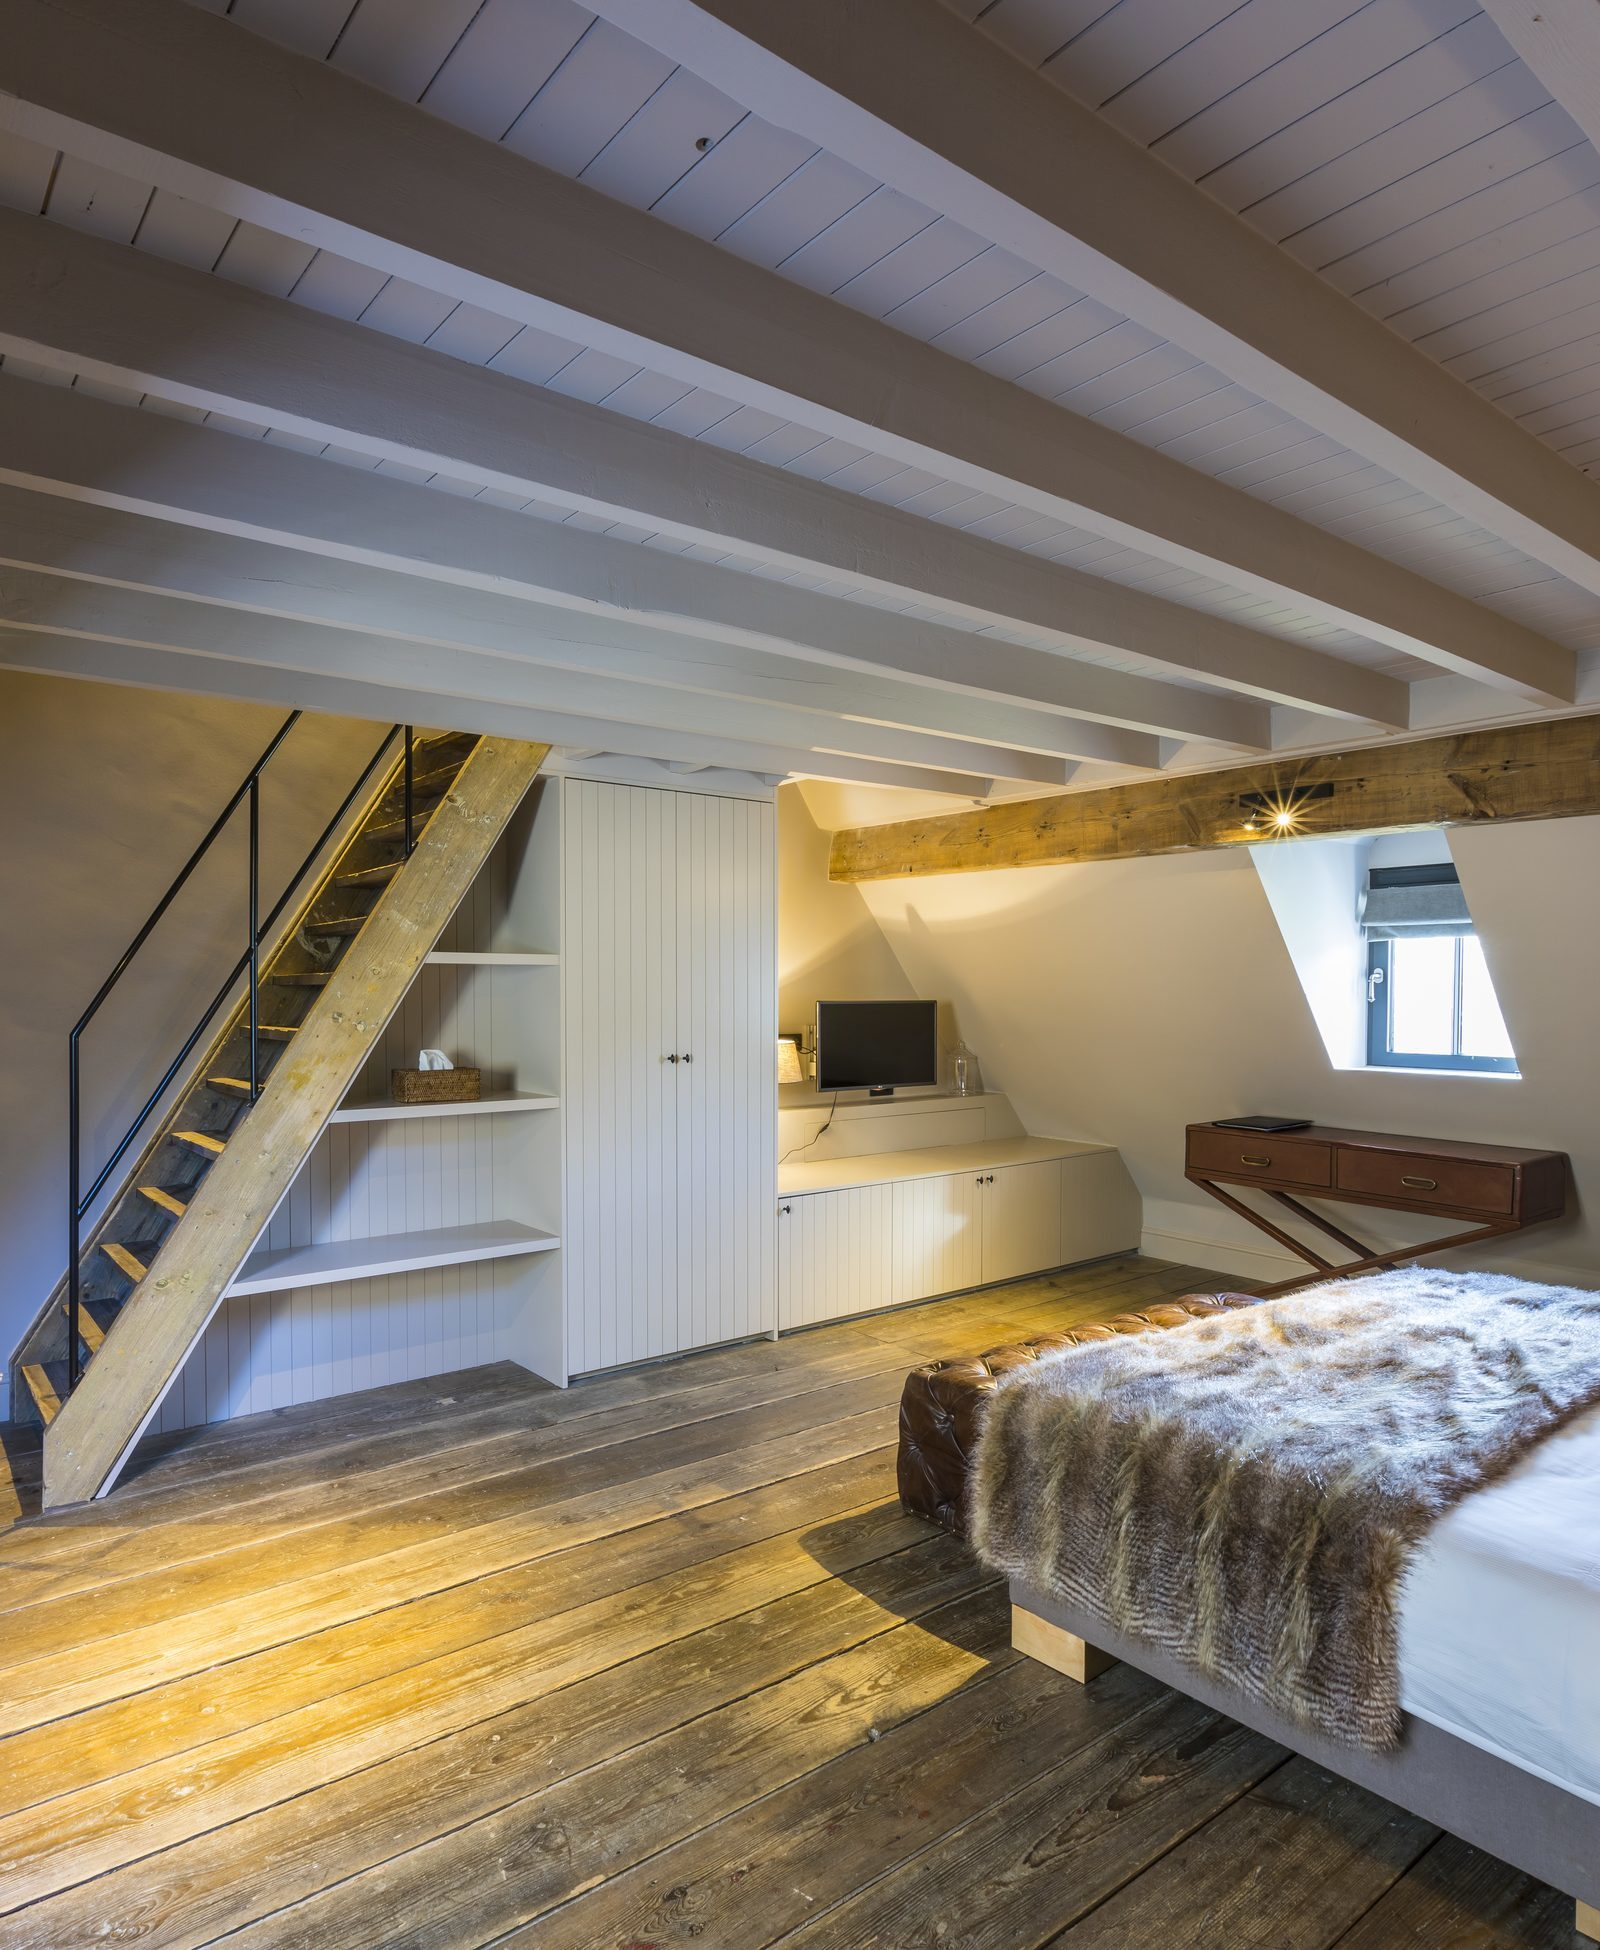 10 luxurious rooms